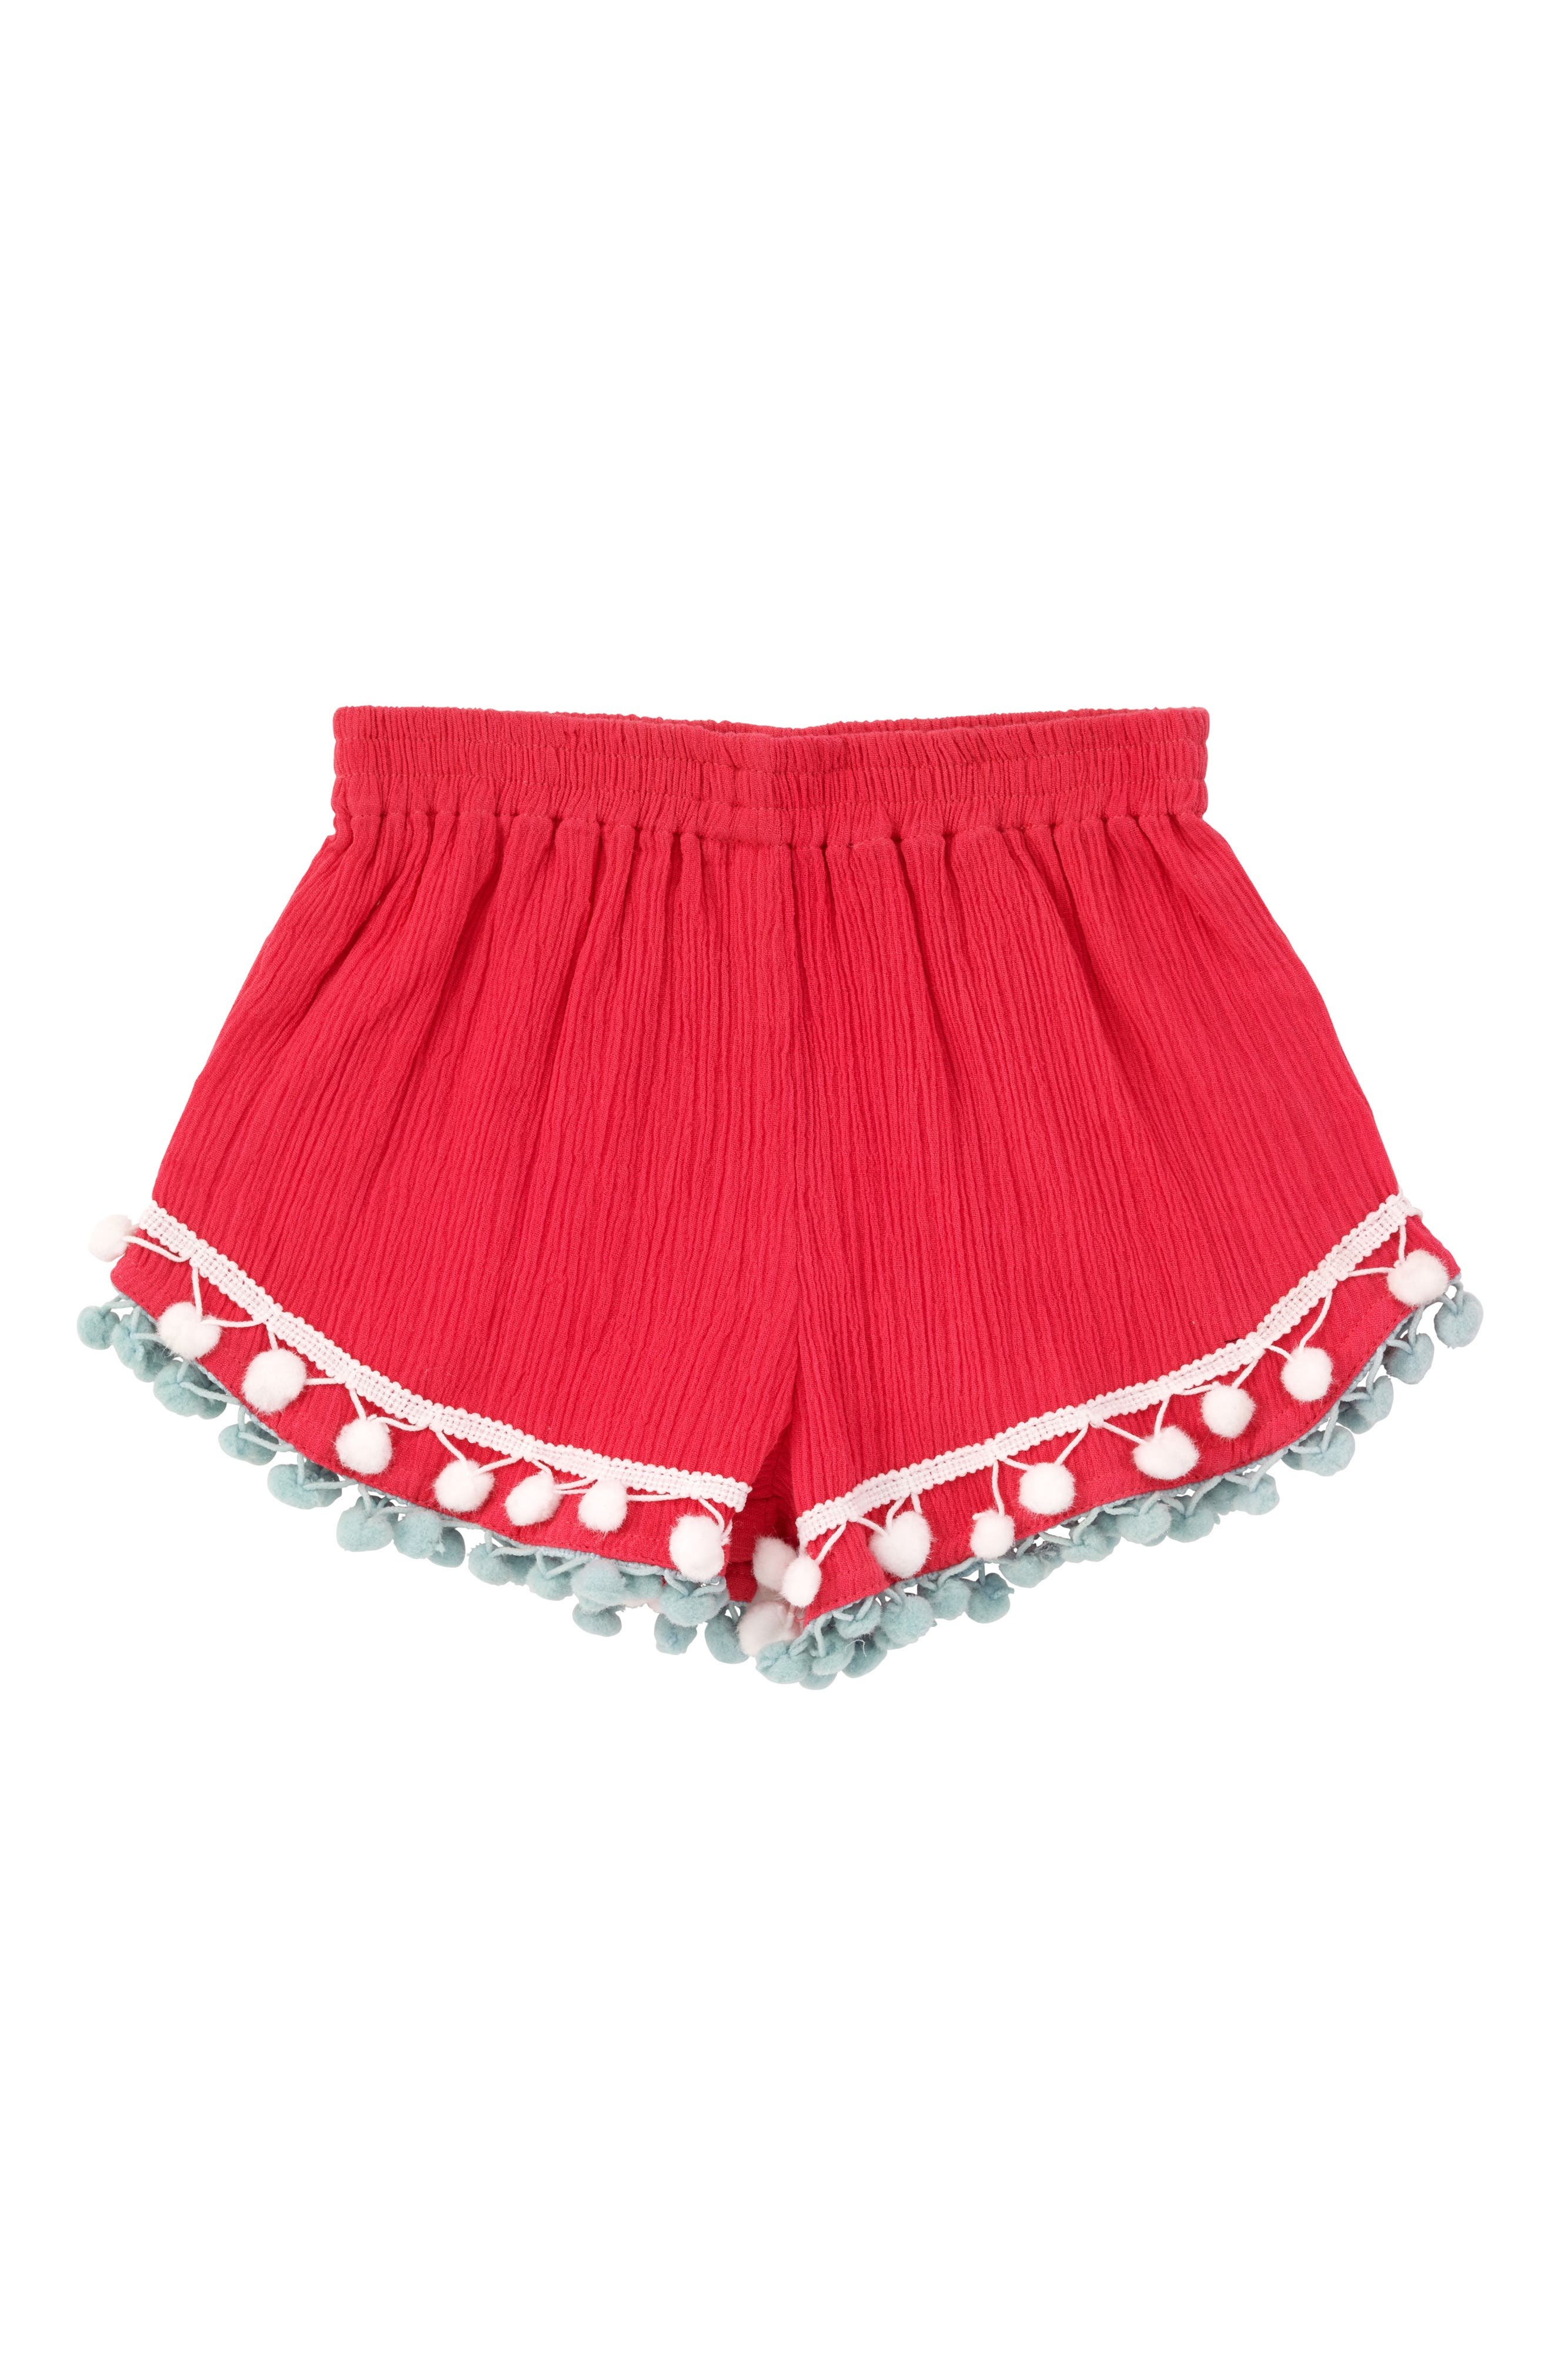 Alternate Image 1 Selected - Masalababy Pompom Shorts (Toddler Girls, Little Girls & Big Girls)